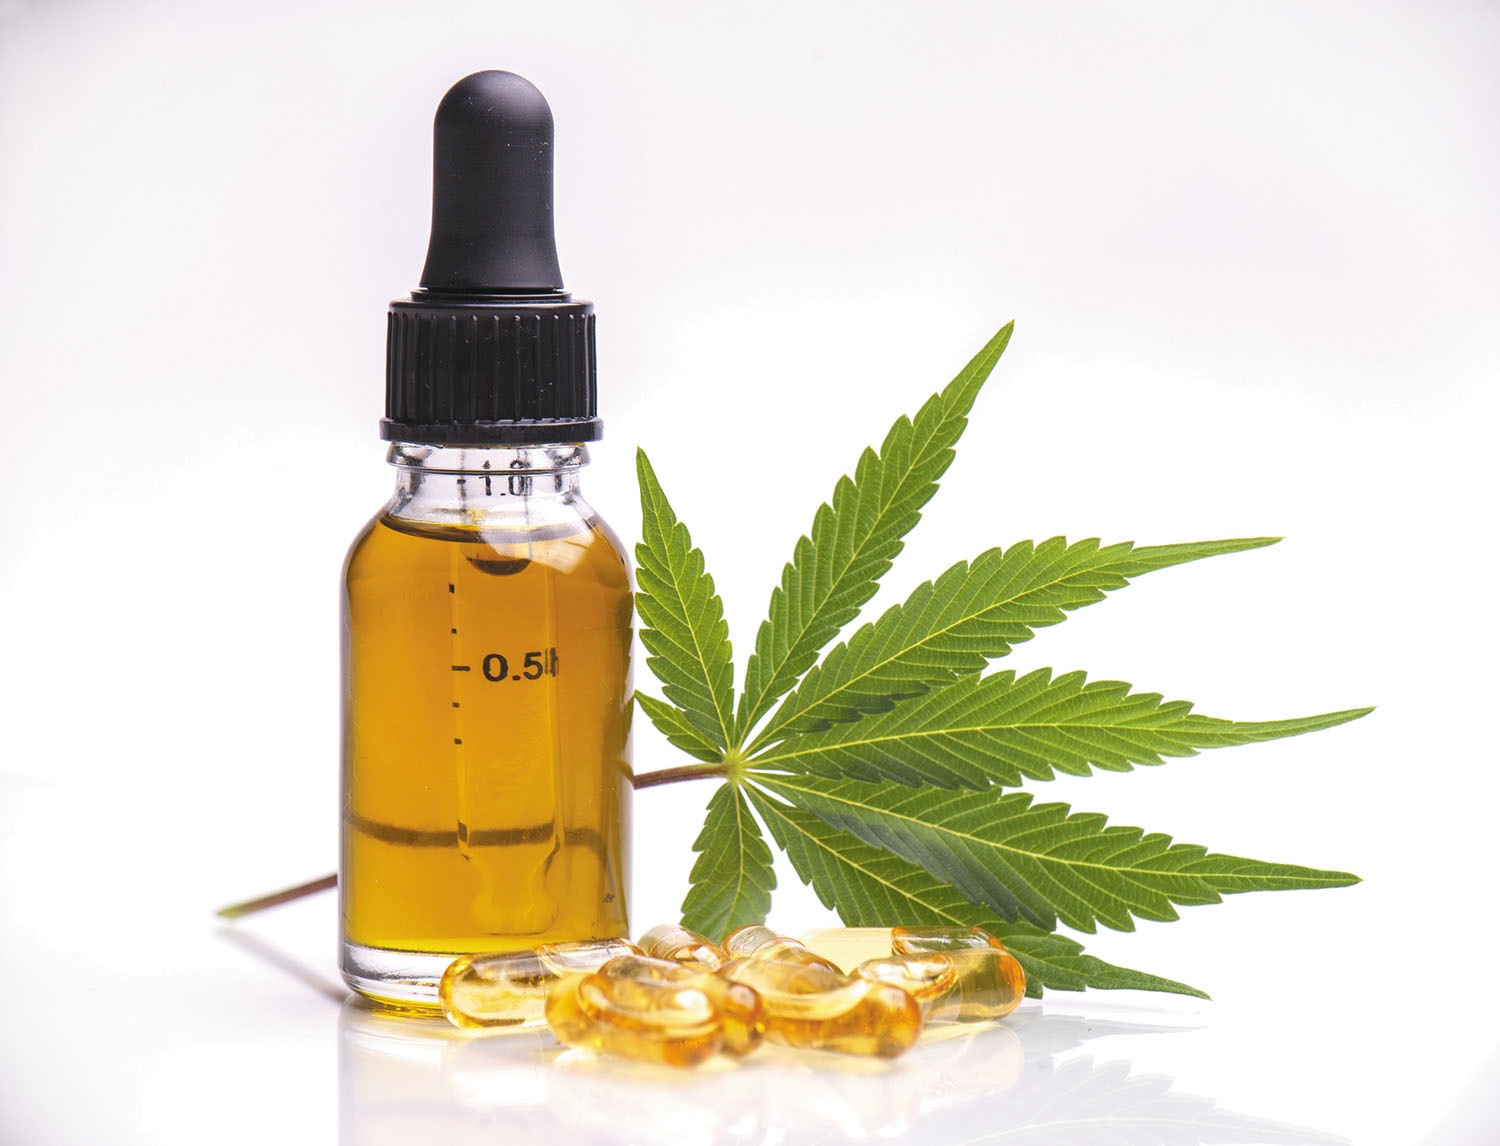 Minimize the Health Risk with the Cbd Product